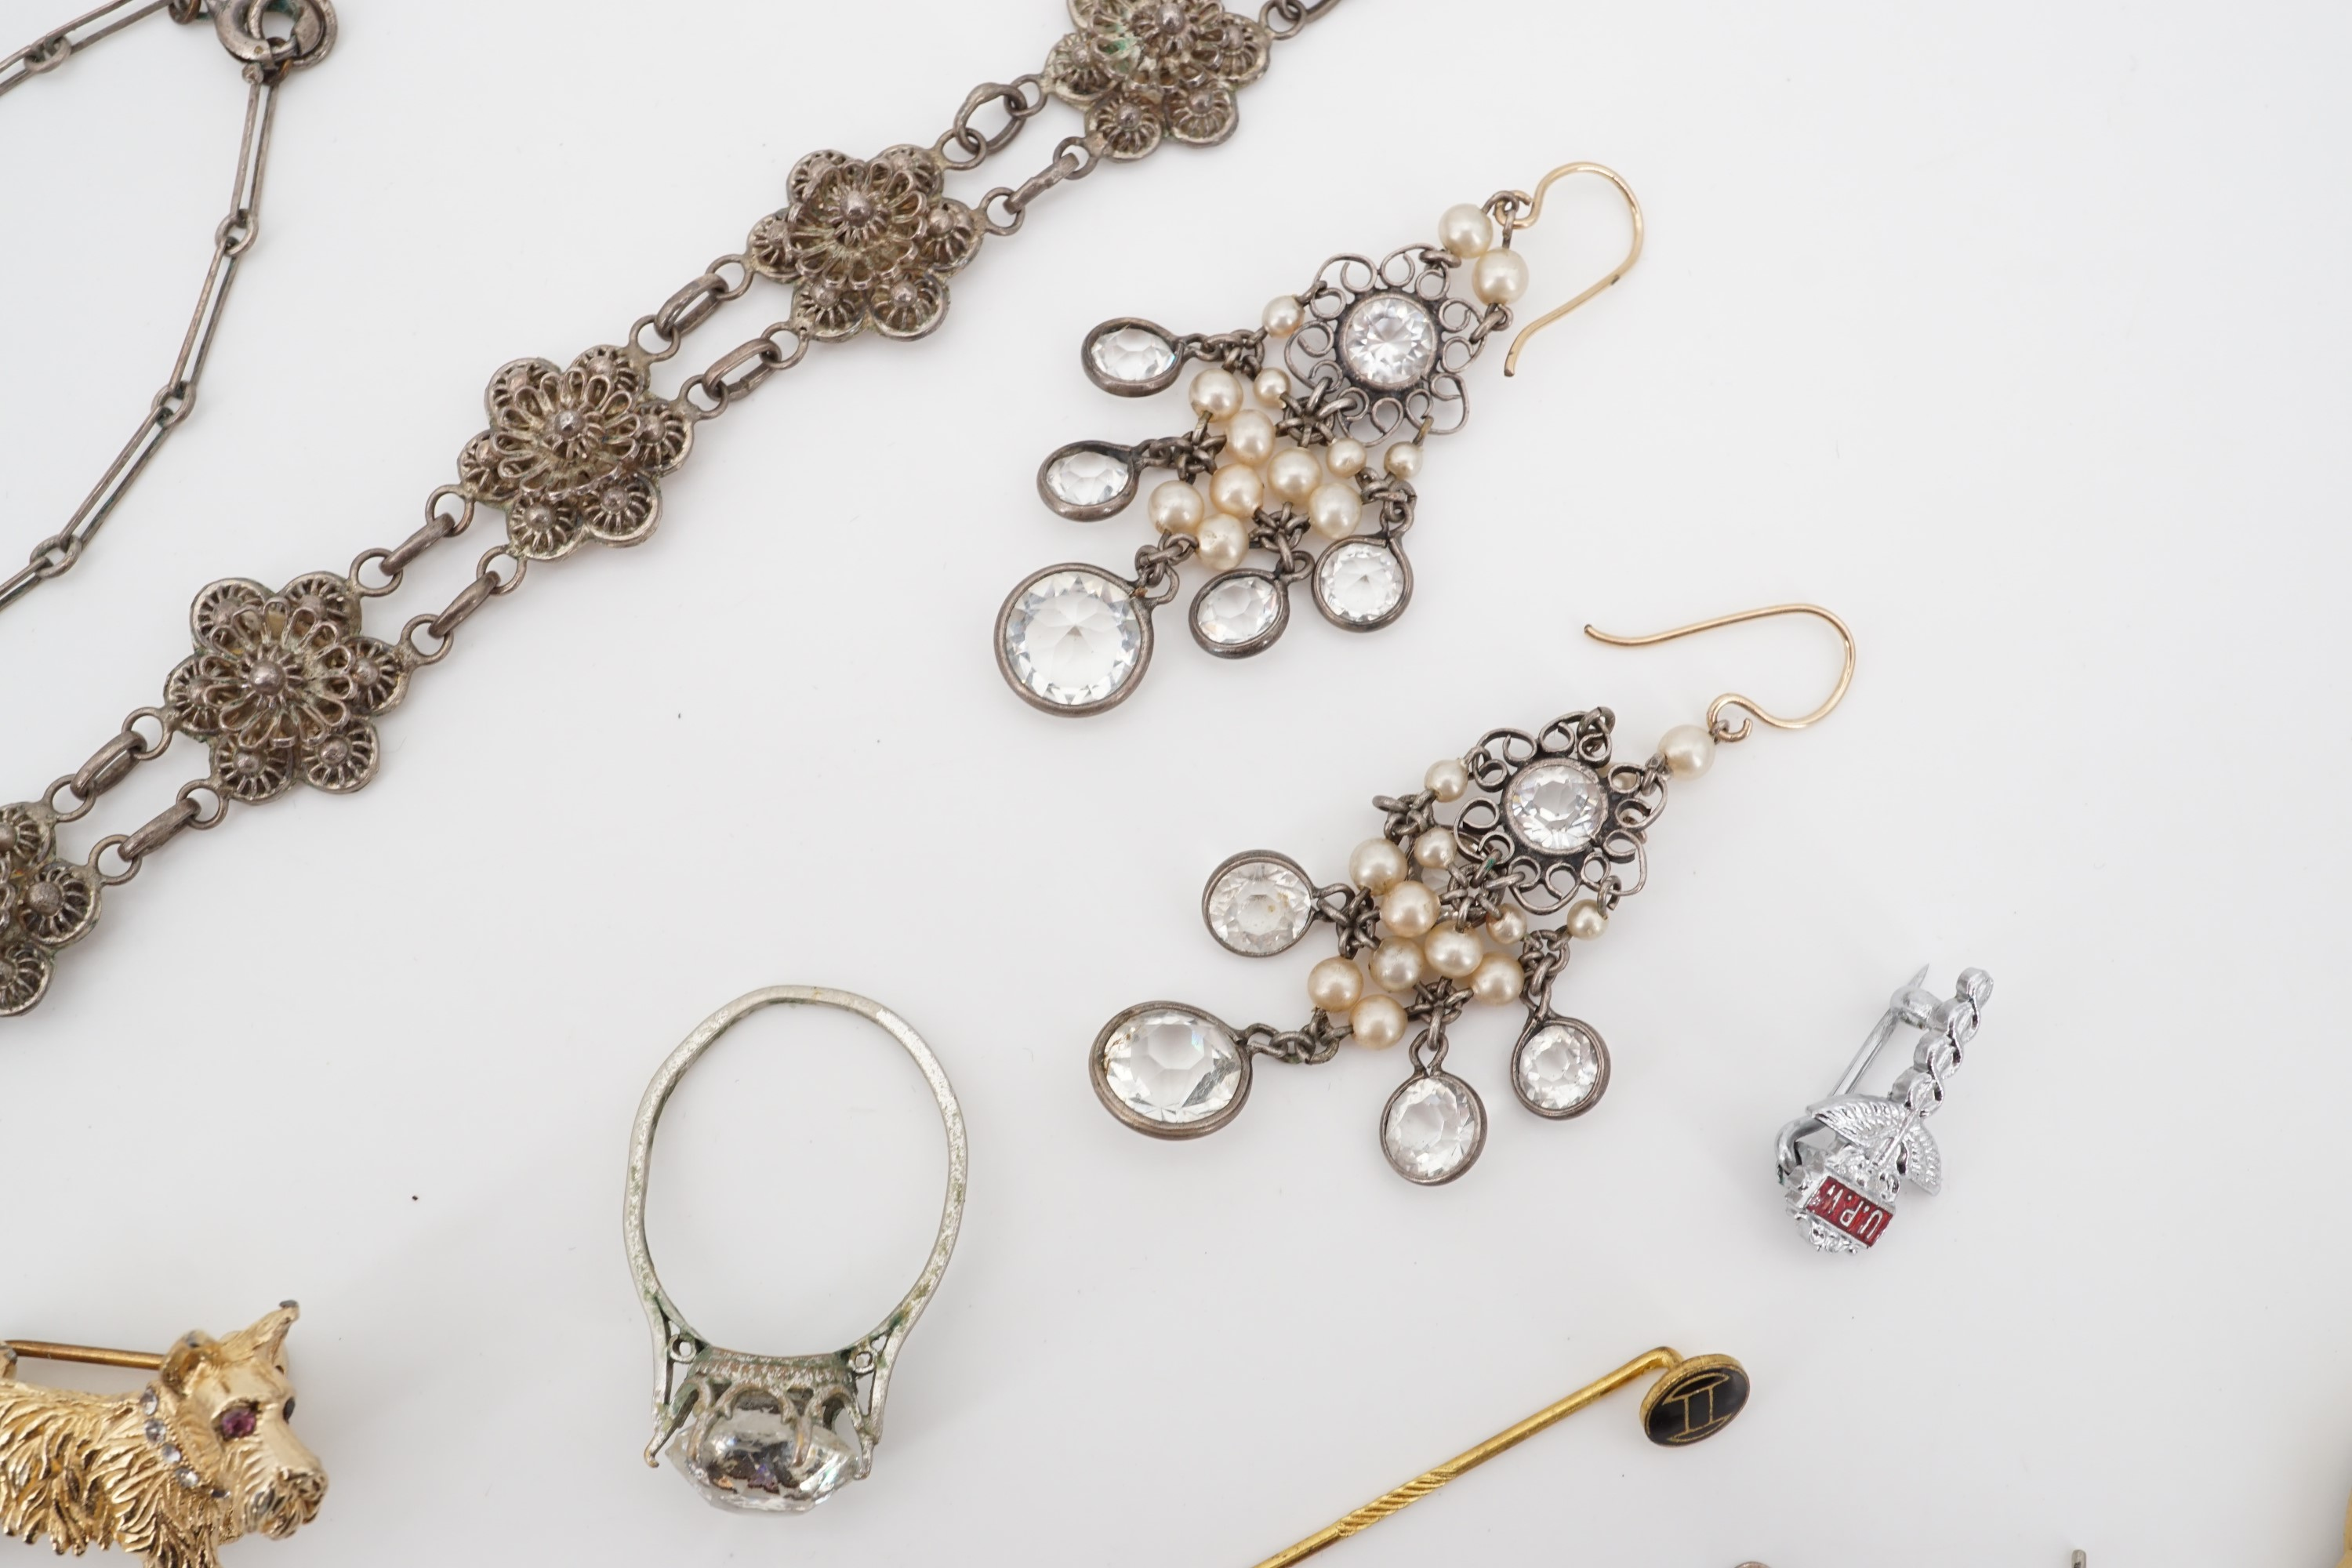 Lot 713 - Vintage costume jewellery, including paste ear pendants, brooches, a white metal filigree